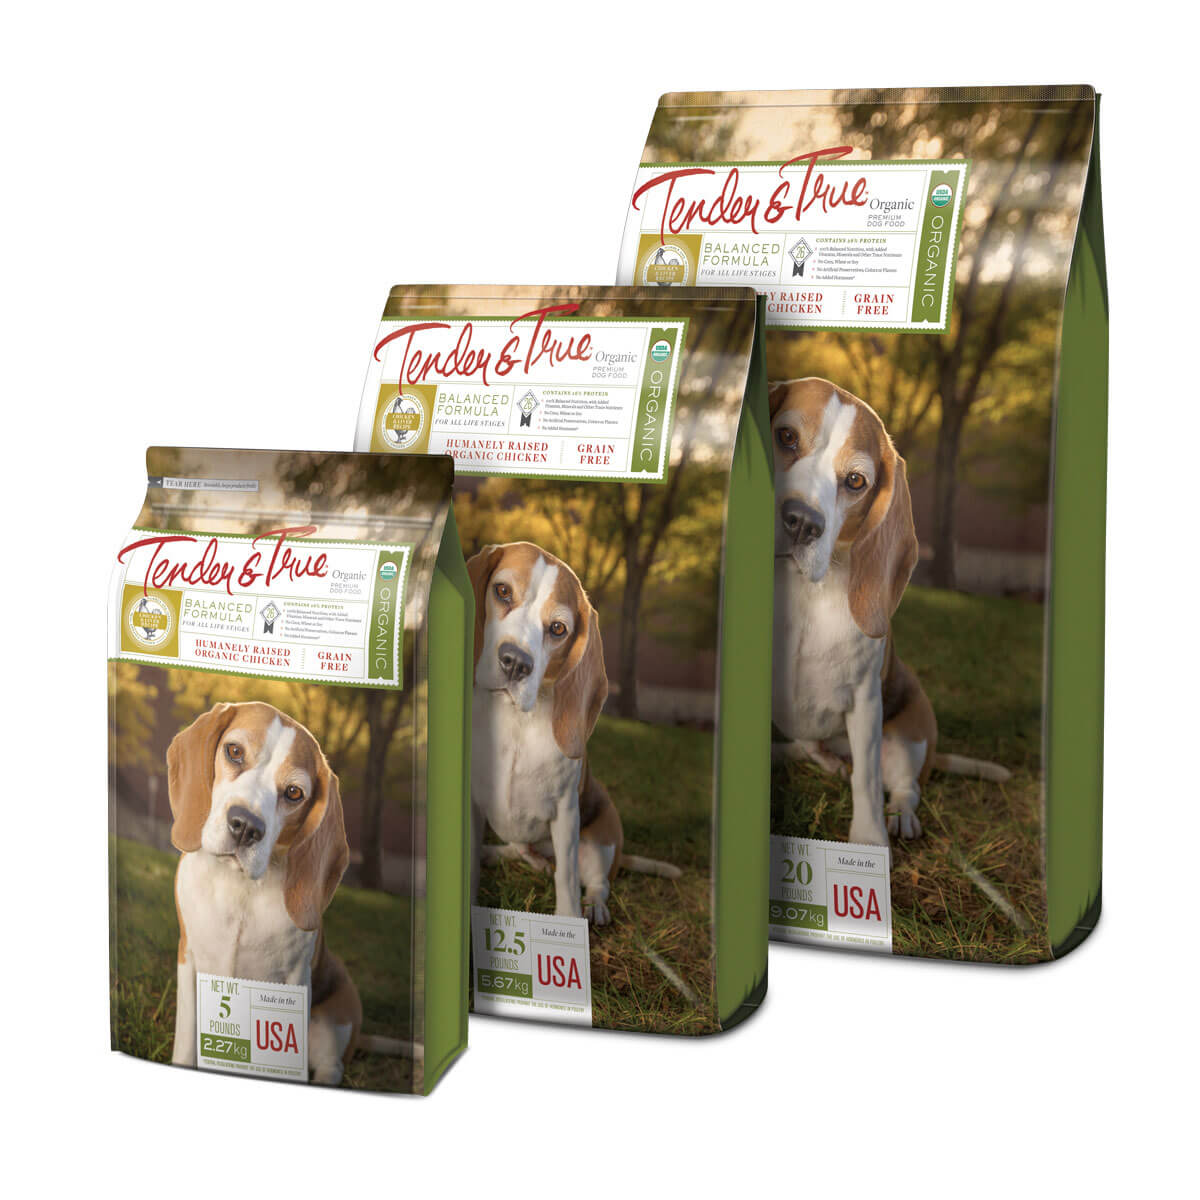 Pet Food Packaging Hero Image